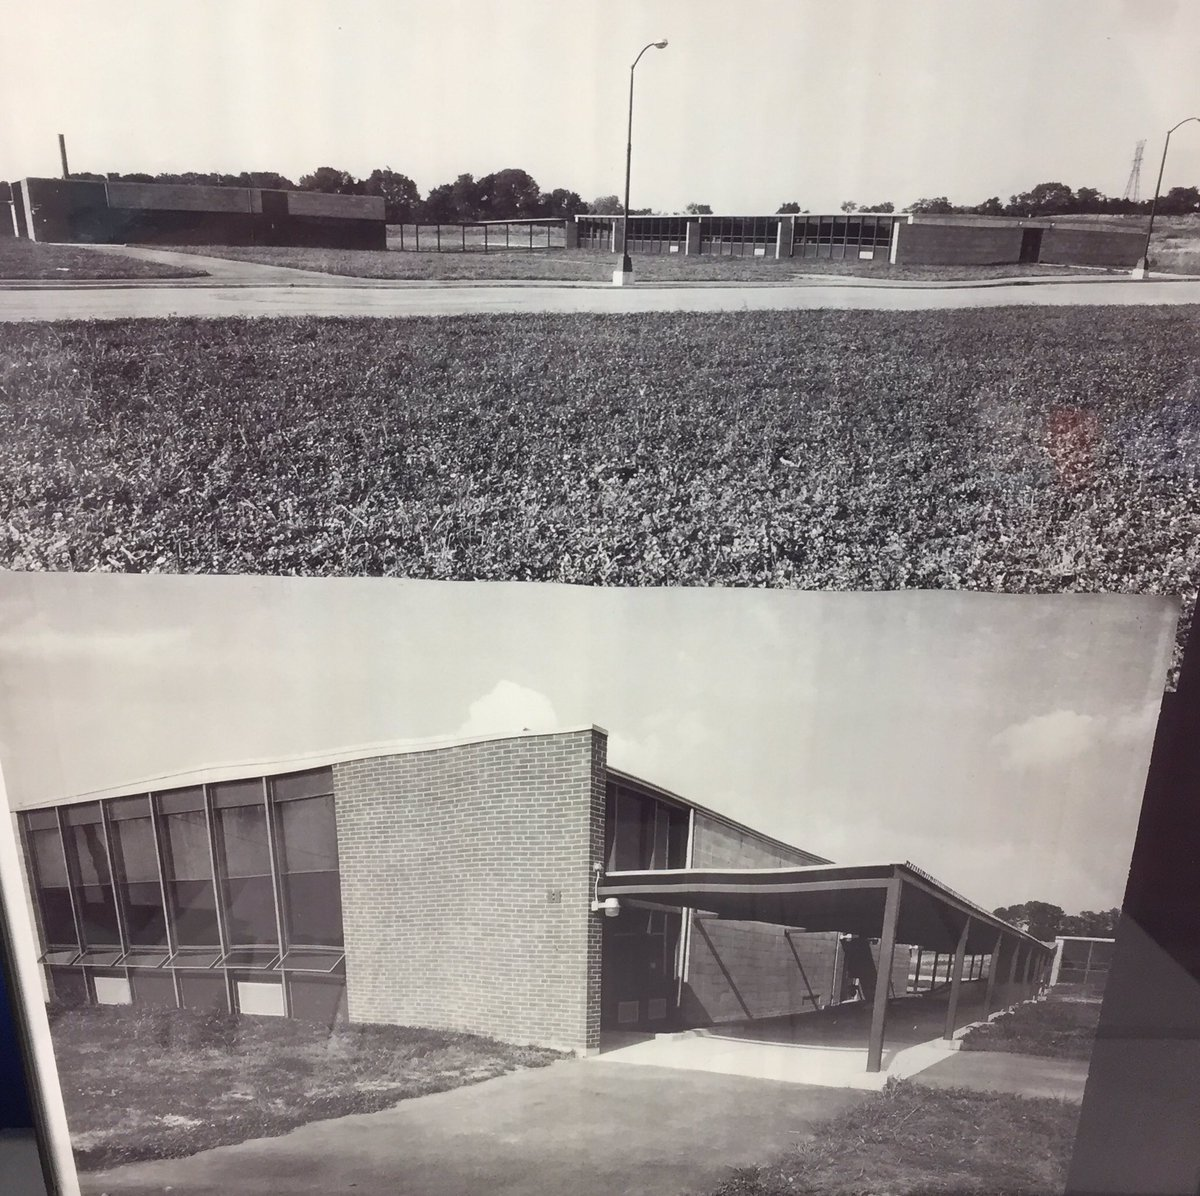 Throwback Thursday, 1959 at Wilson Elem. Pictures of the original 6 classrooms and the cafeteria.  #wearefhsd @FHSchools @AndersonTownshp